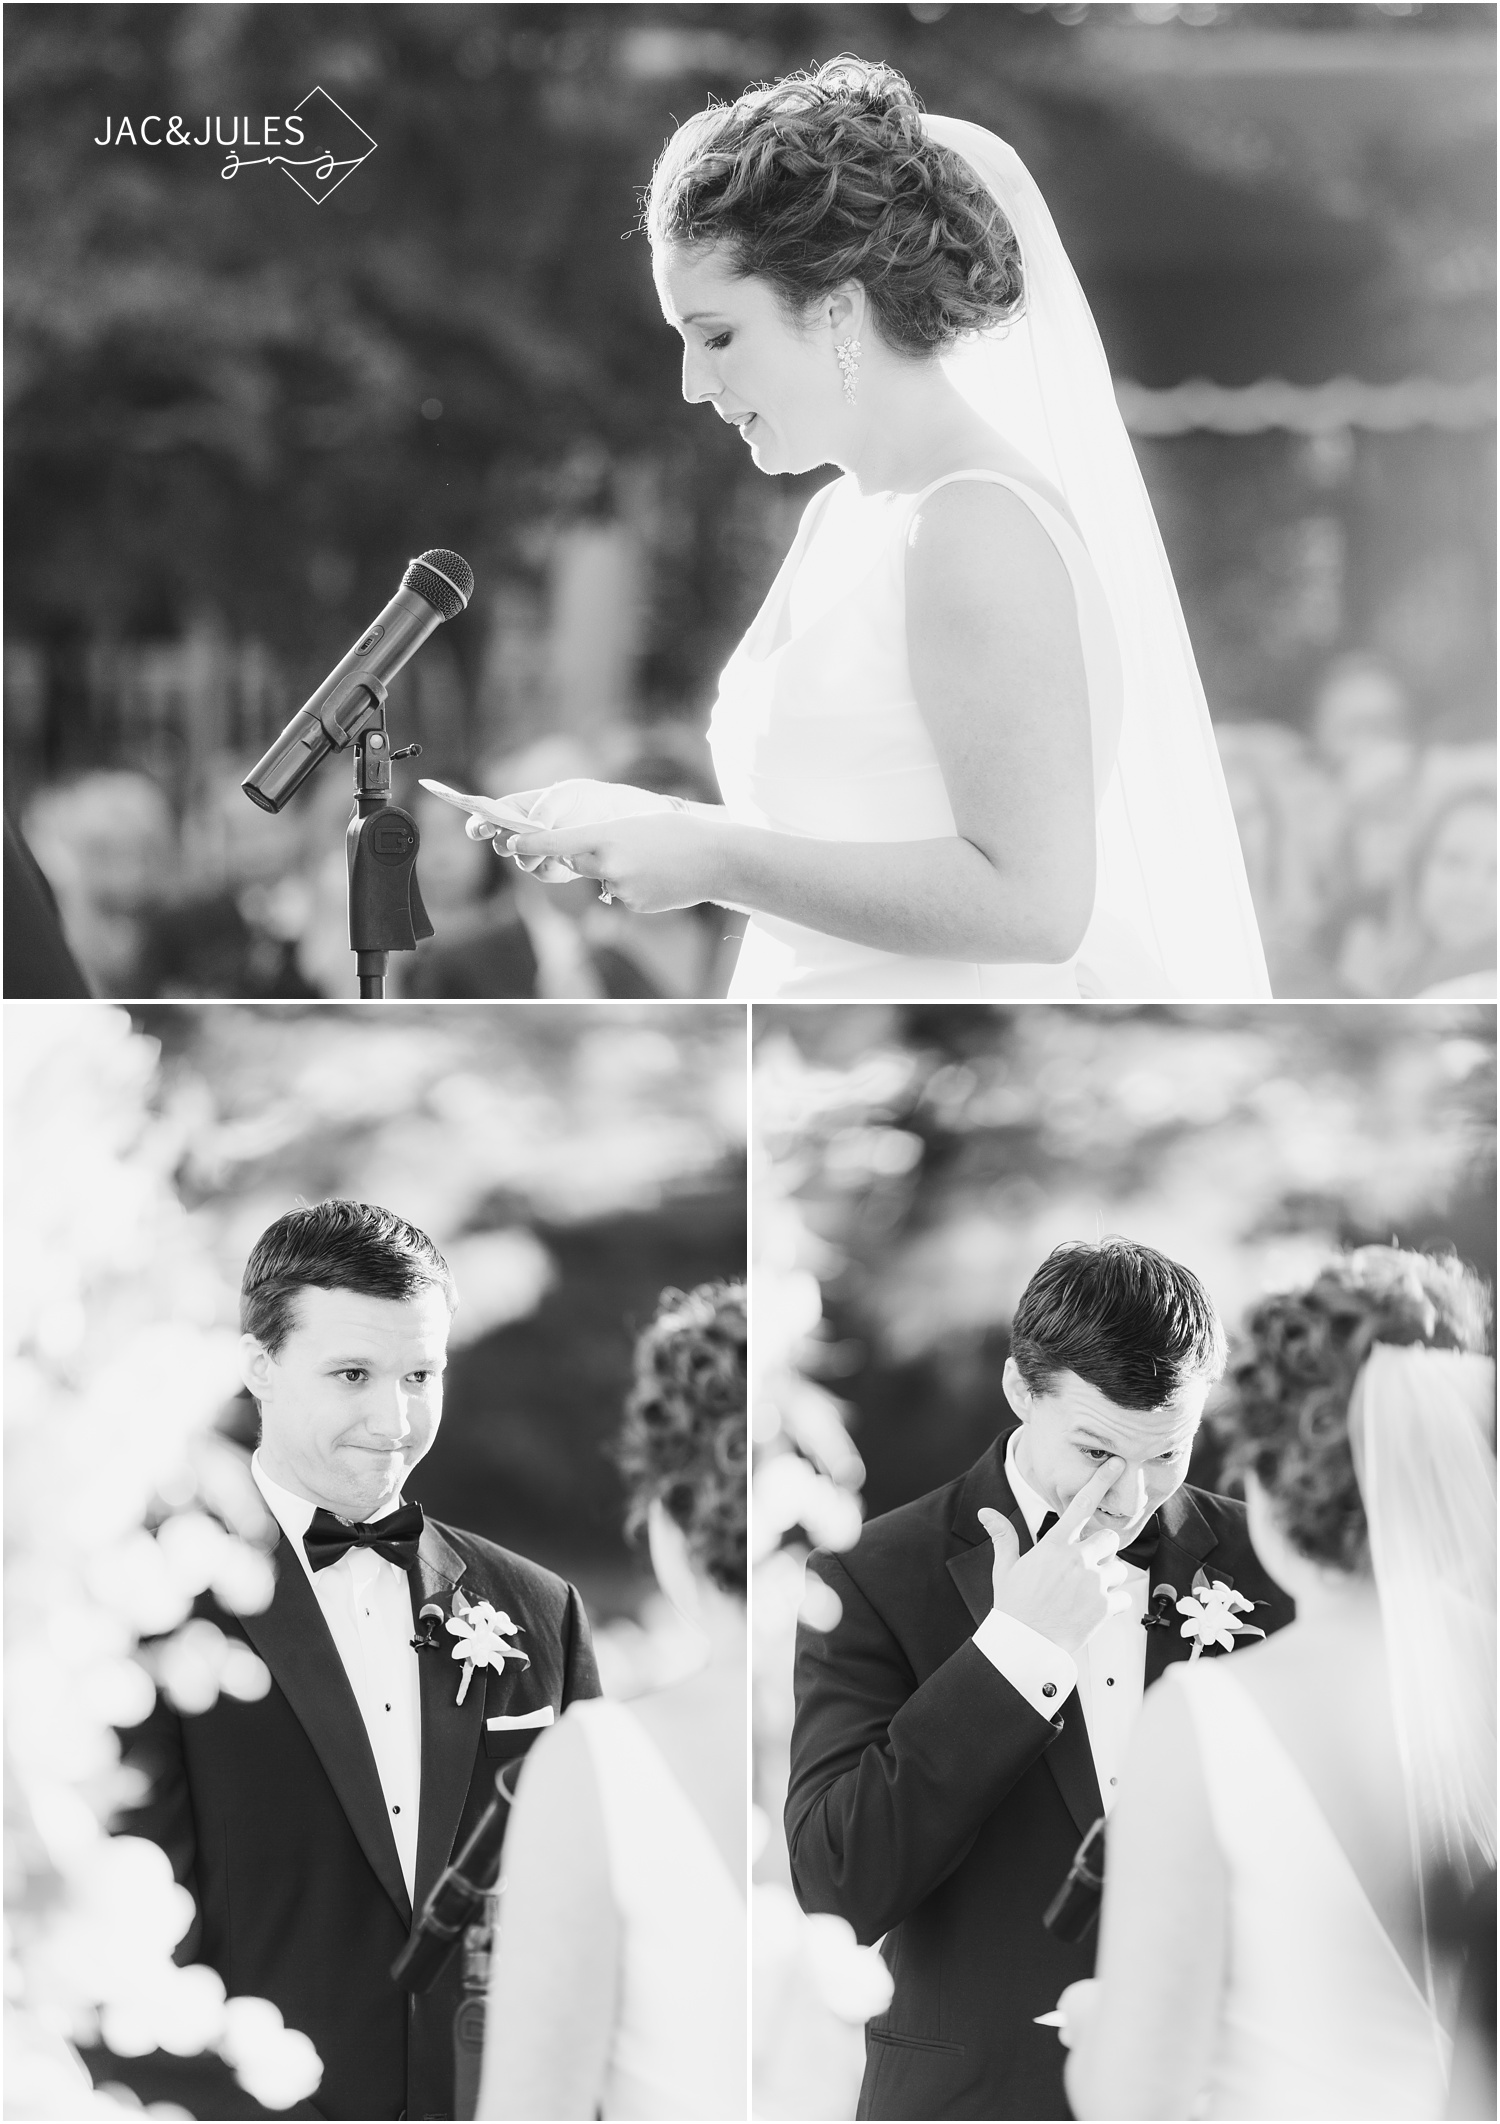 emotional vow reading at wedding ceremony at eagle oaks golf and country club in wall, nj.